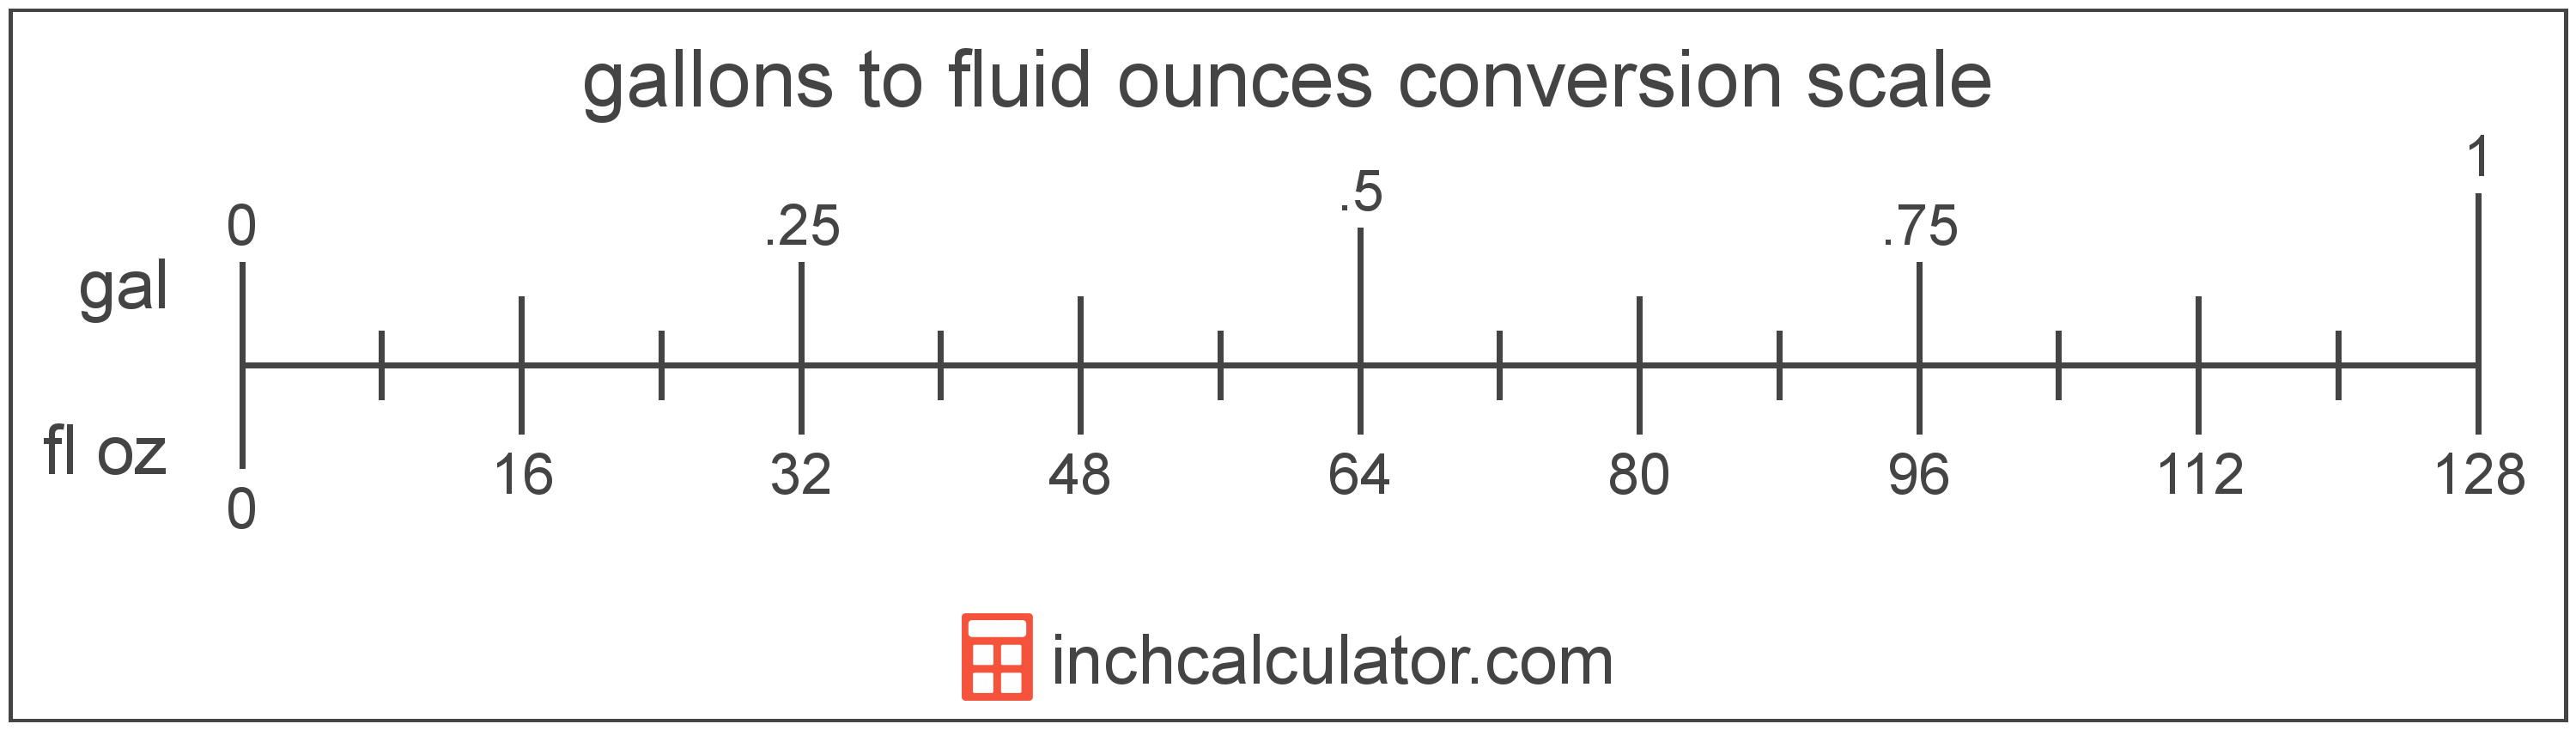 conversion scale showing fluid ounces and equivalent gallons volume values